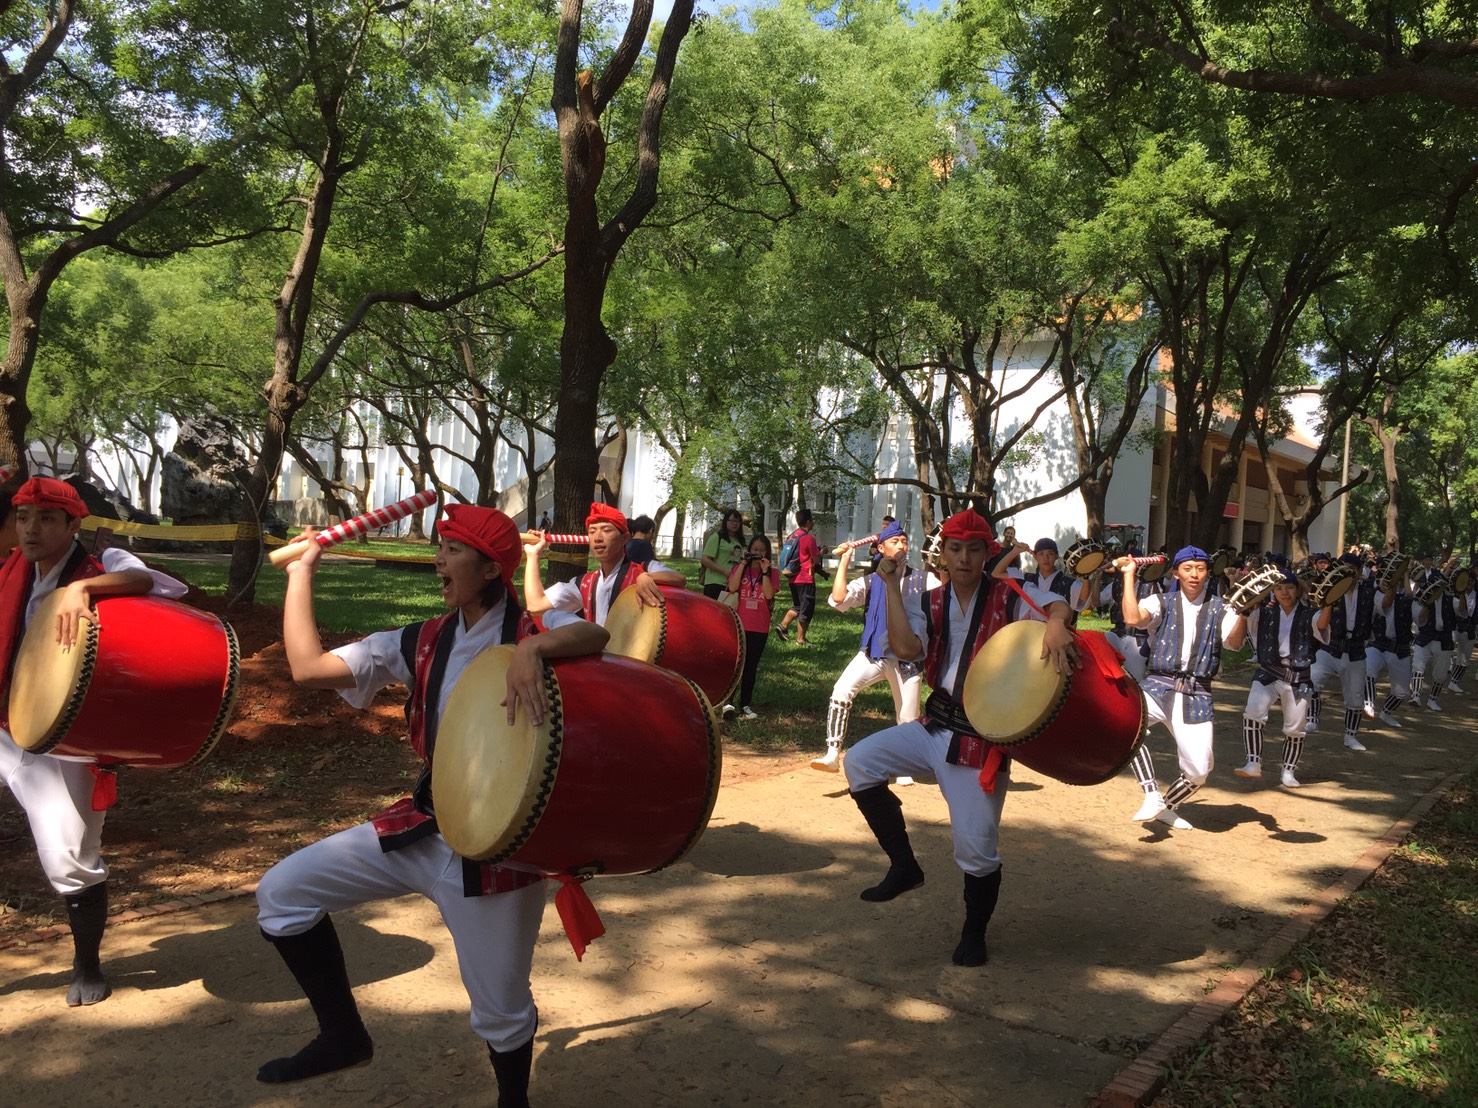 The dance uses Taiko as the main instrument as well as Shamisen, a three-stringed traditional Japanese musical instrument.